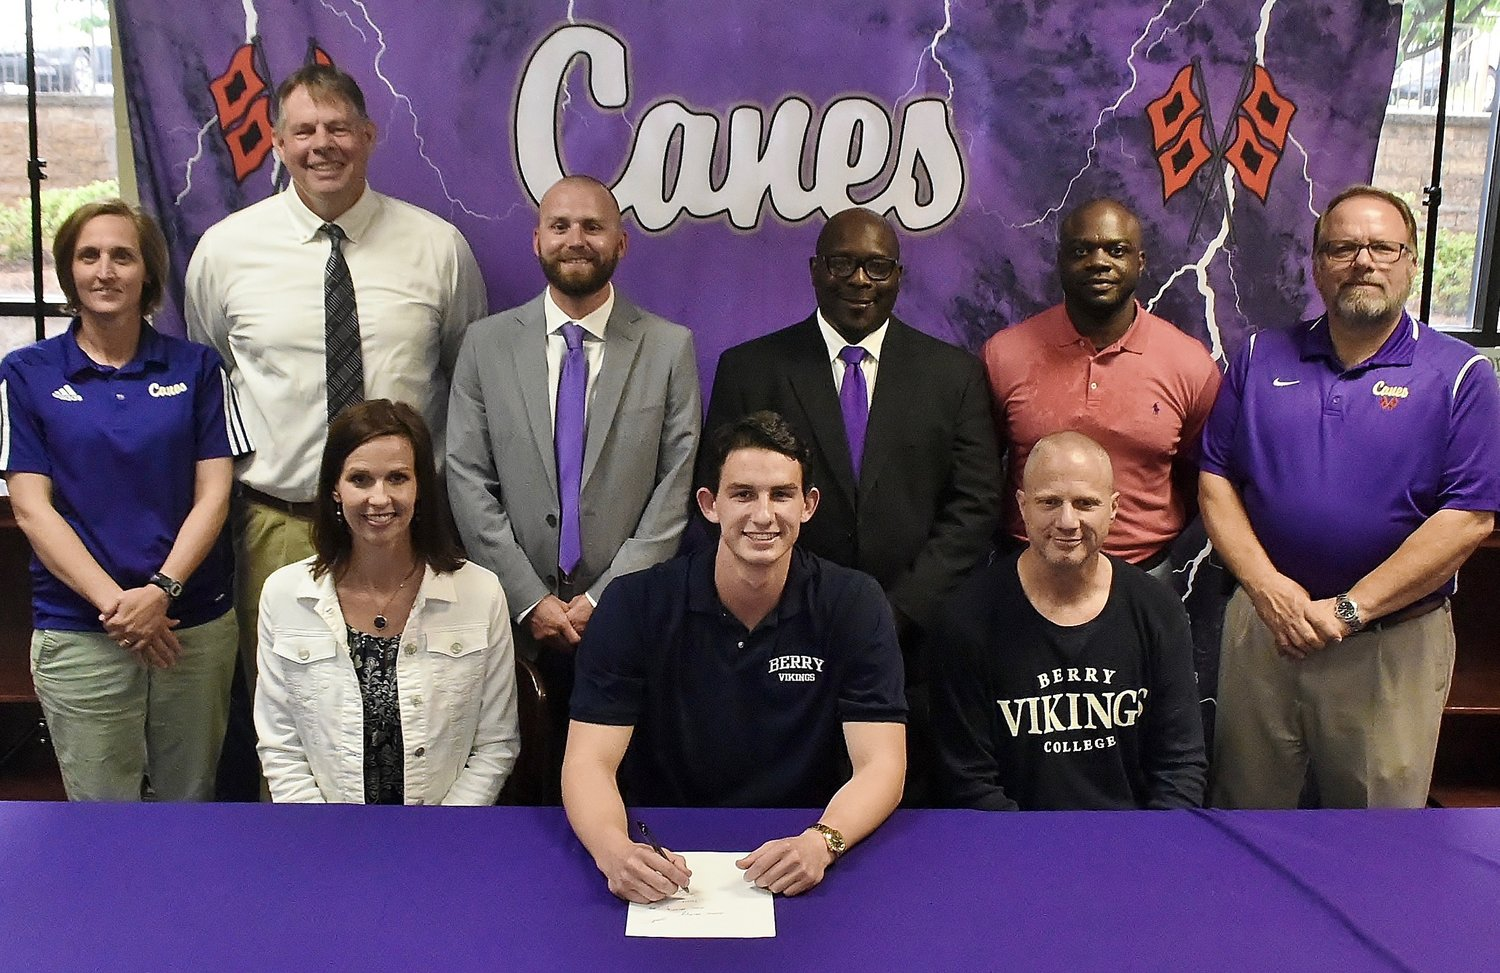 Cartersville High graduate Isaac Gridley signed to play basketball at Berry College in Rome. On hand for the signing were, from left, front row: Holly Gridley, mother; John Gridley, father; back row, Shelley Tierce, CHS principal; Mike Tobin, CHS head basketball coach; Caleb Freeman, CHS assistant basketball coach; Cedric Ward, CHS assistant basketball coach; Wayne Kent, CHS assistant basketball coach; and Darrell Demastus, CHS athletic director.